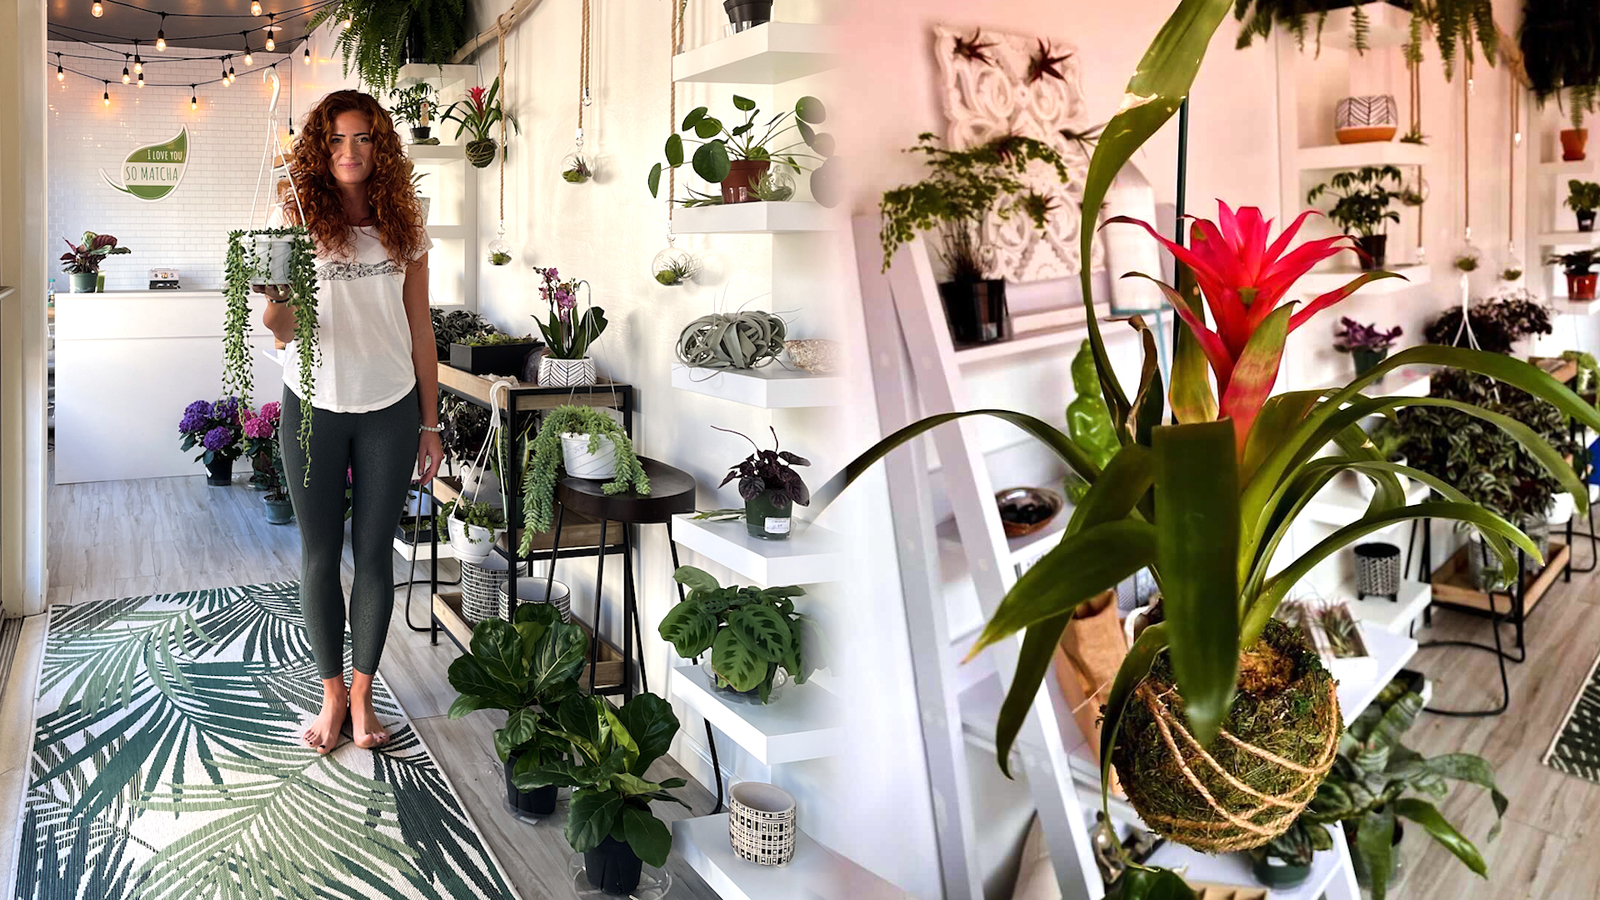 The North Fork Plant Company hot yoga studio houses wide variety of houseplants that you can buy